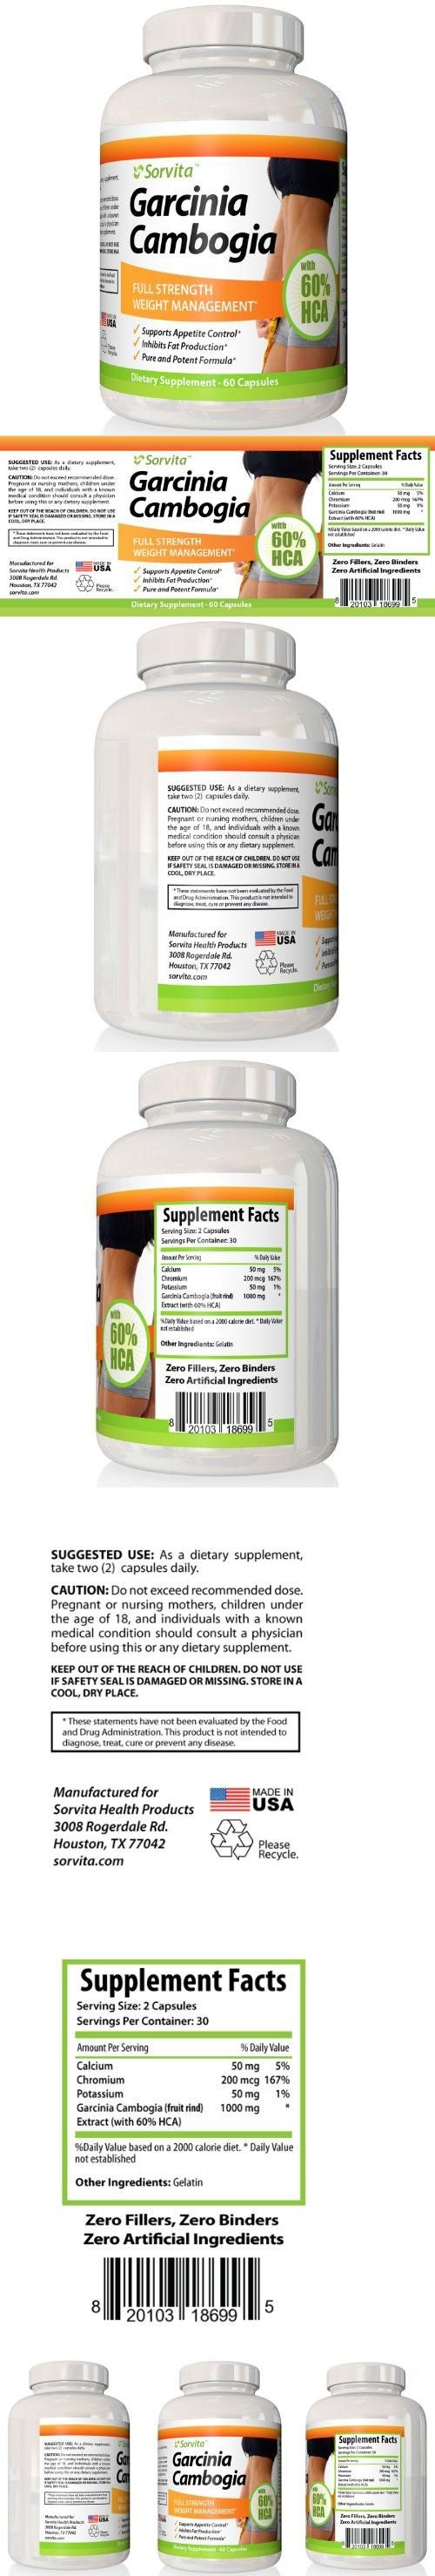 with Calcium and Potassium for Best Results. Absolutely No Fillers